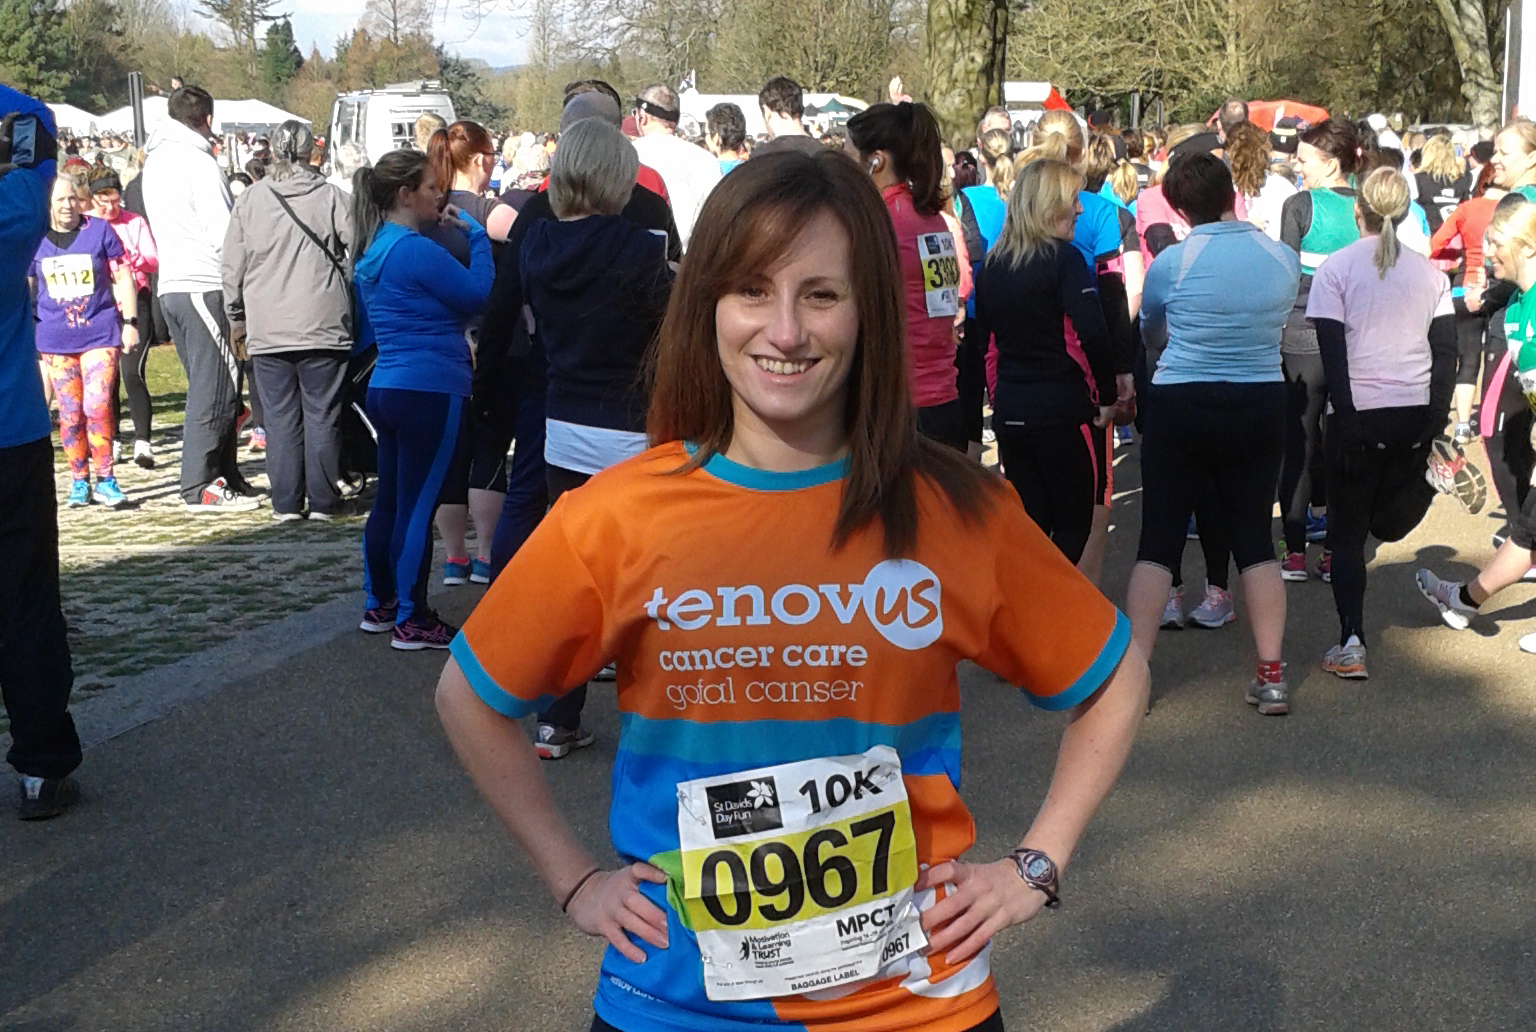 Co-Managing Director and Head of HR, Emma Hughes before her 10K run for Tenovus